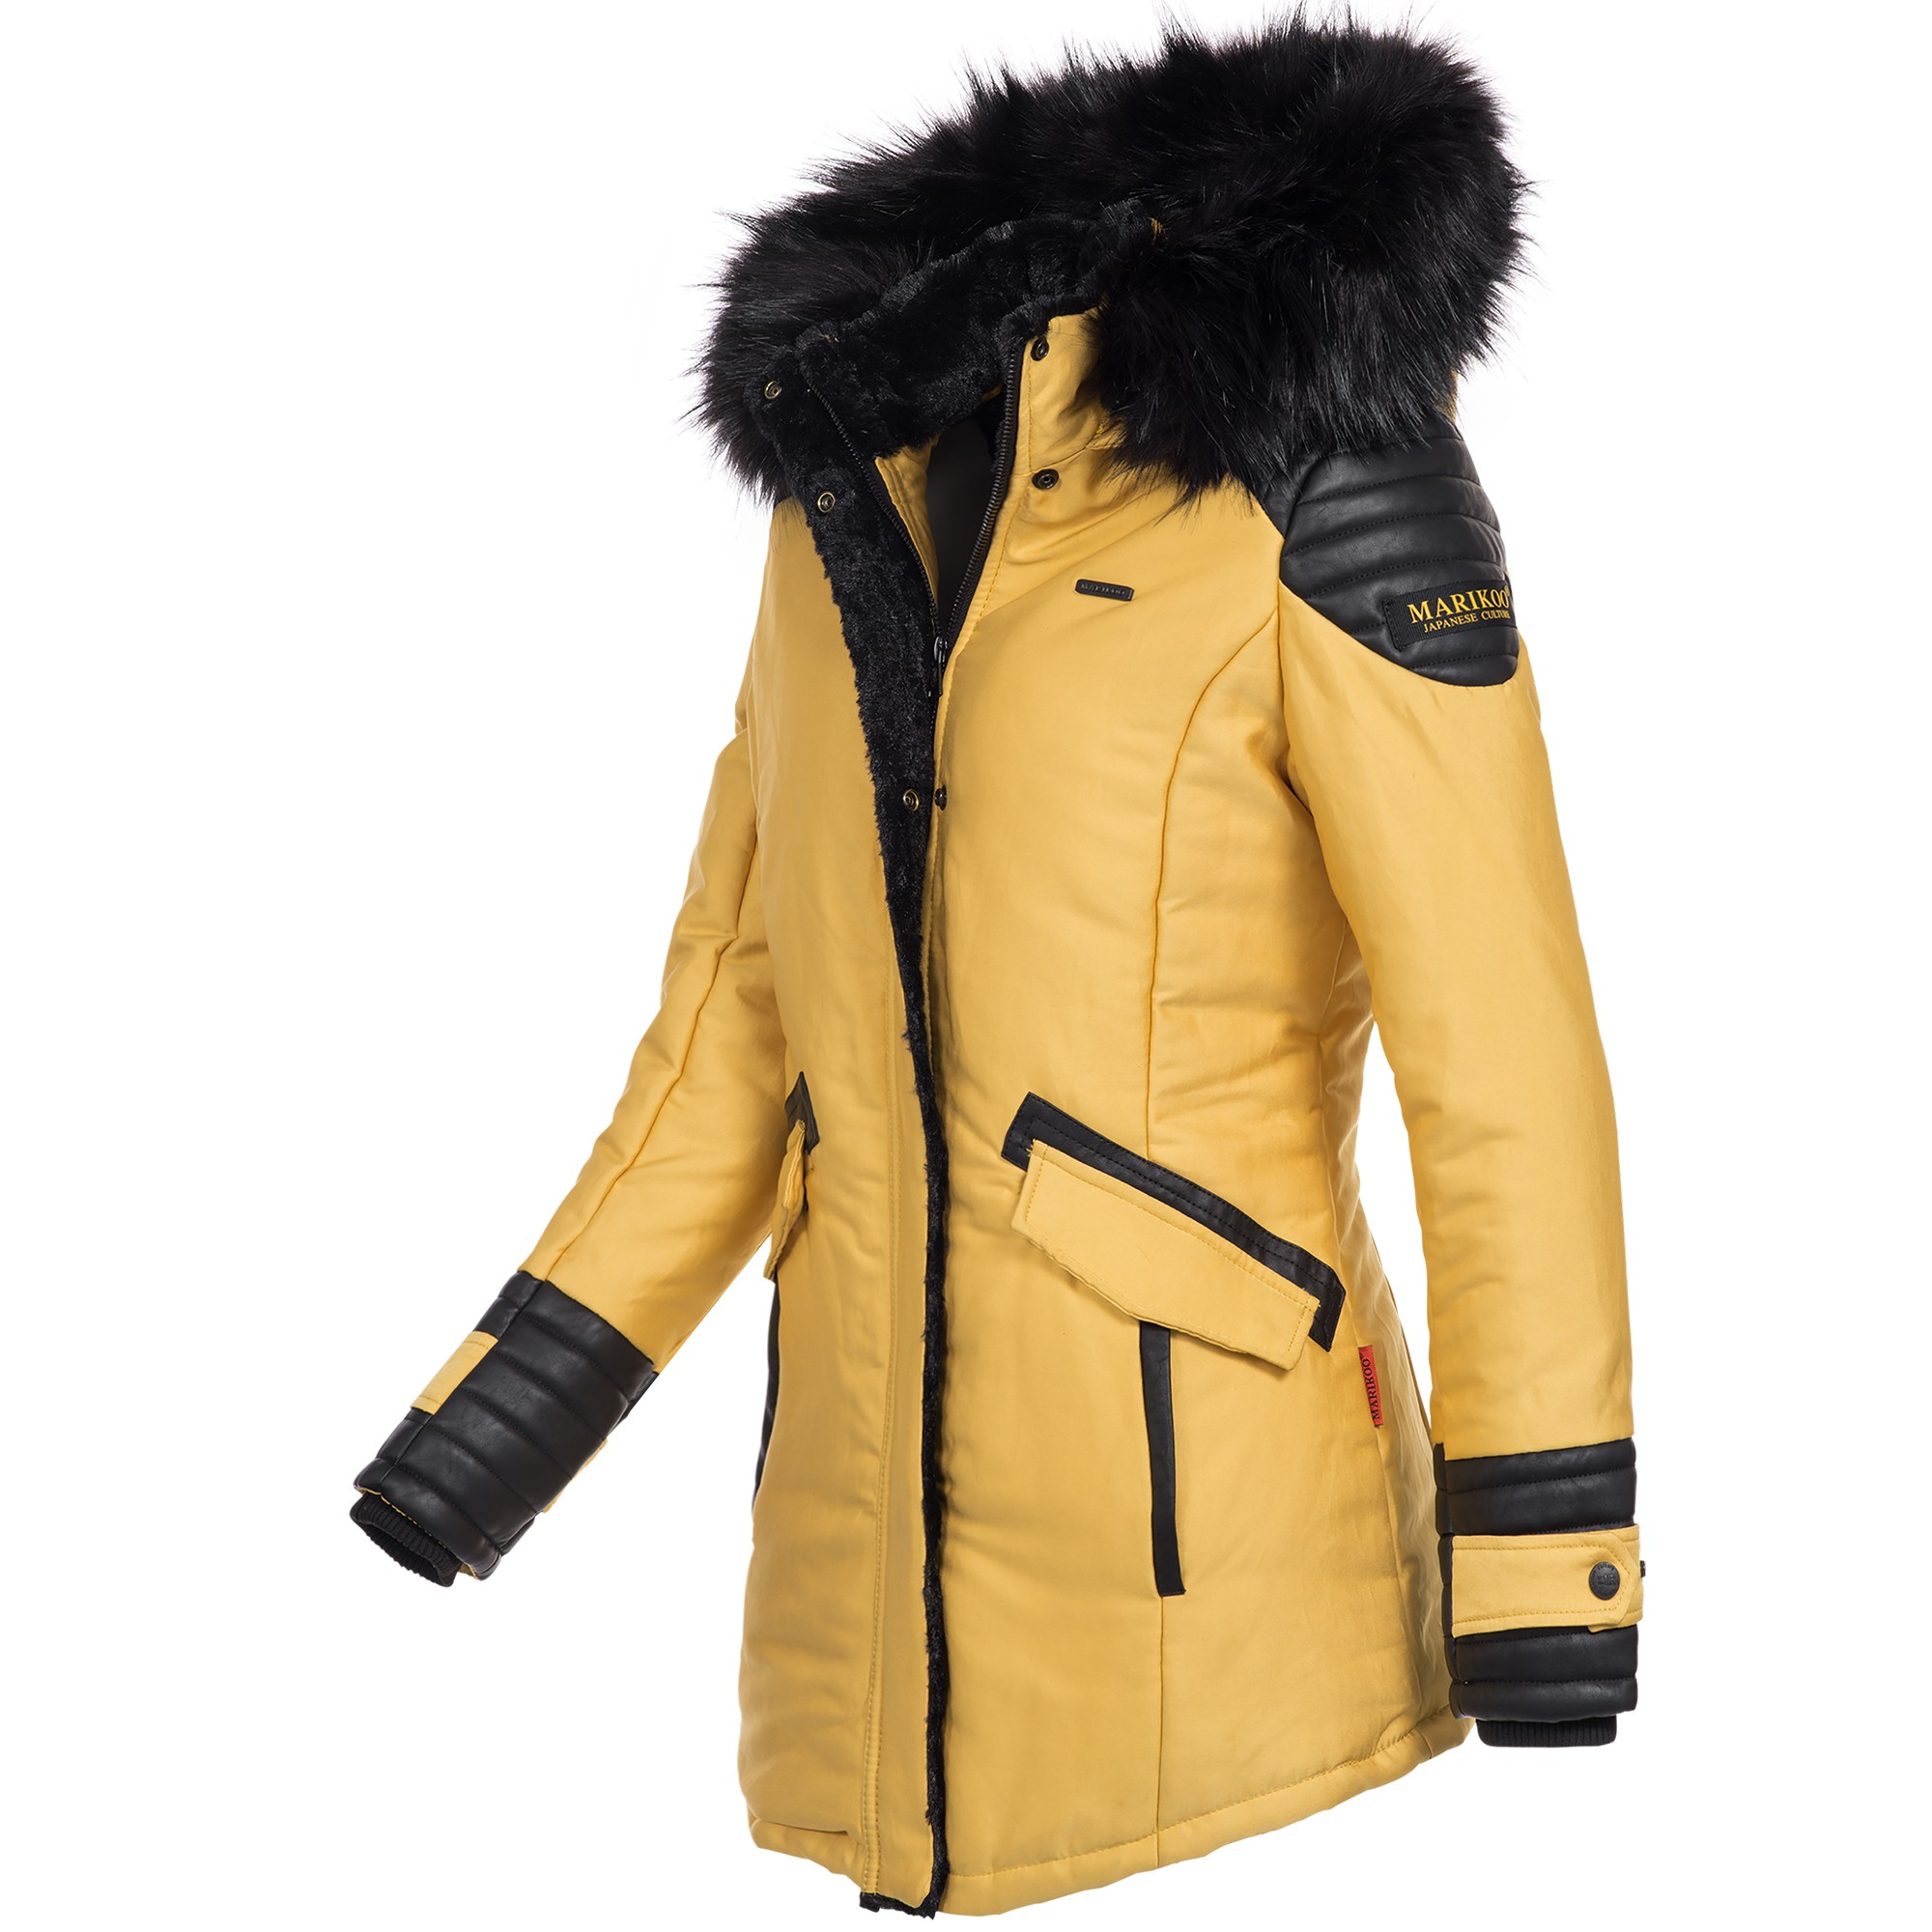 marikoo zauberfee damen mantel wintermantel jacke parka warm gef ttert xs xxl ebay. Black Bedroom Furniture Sets. Home Design Ideas